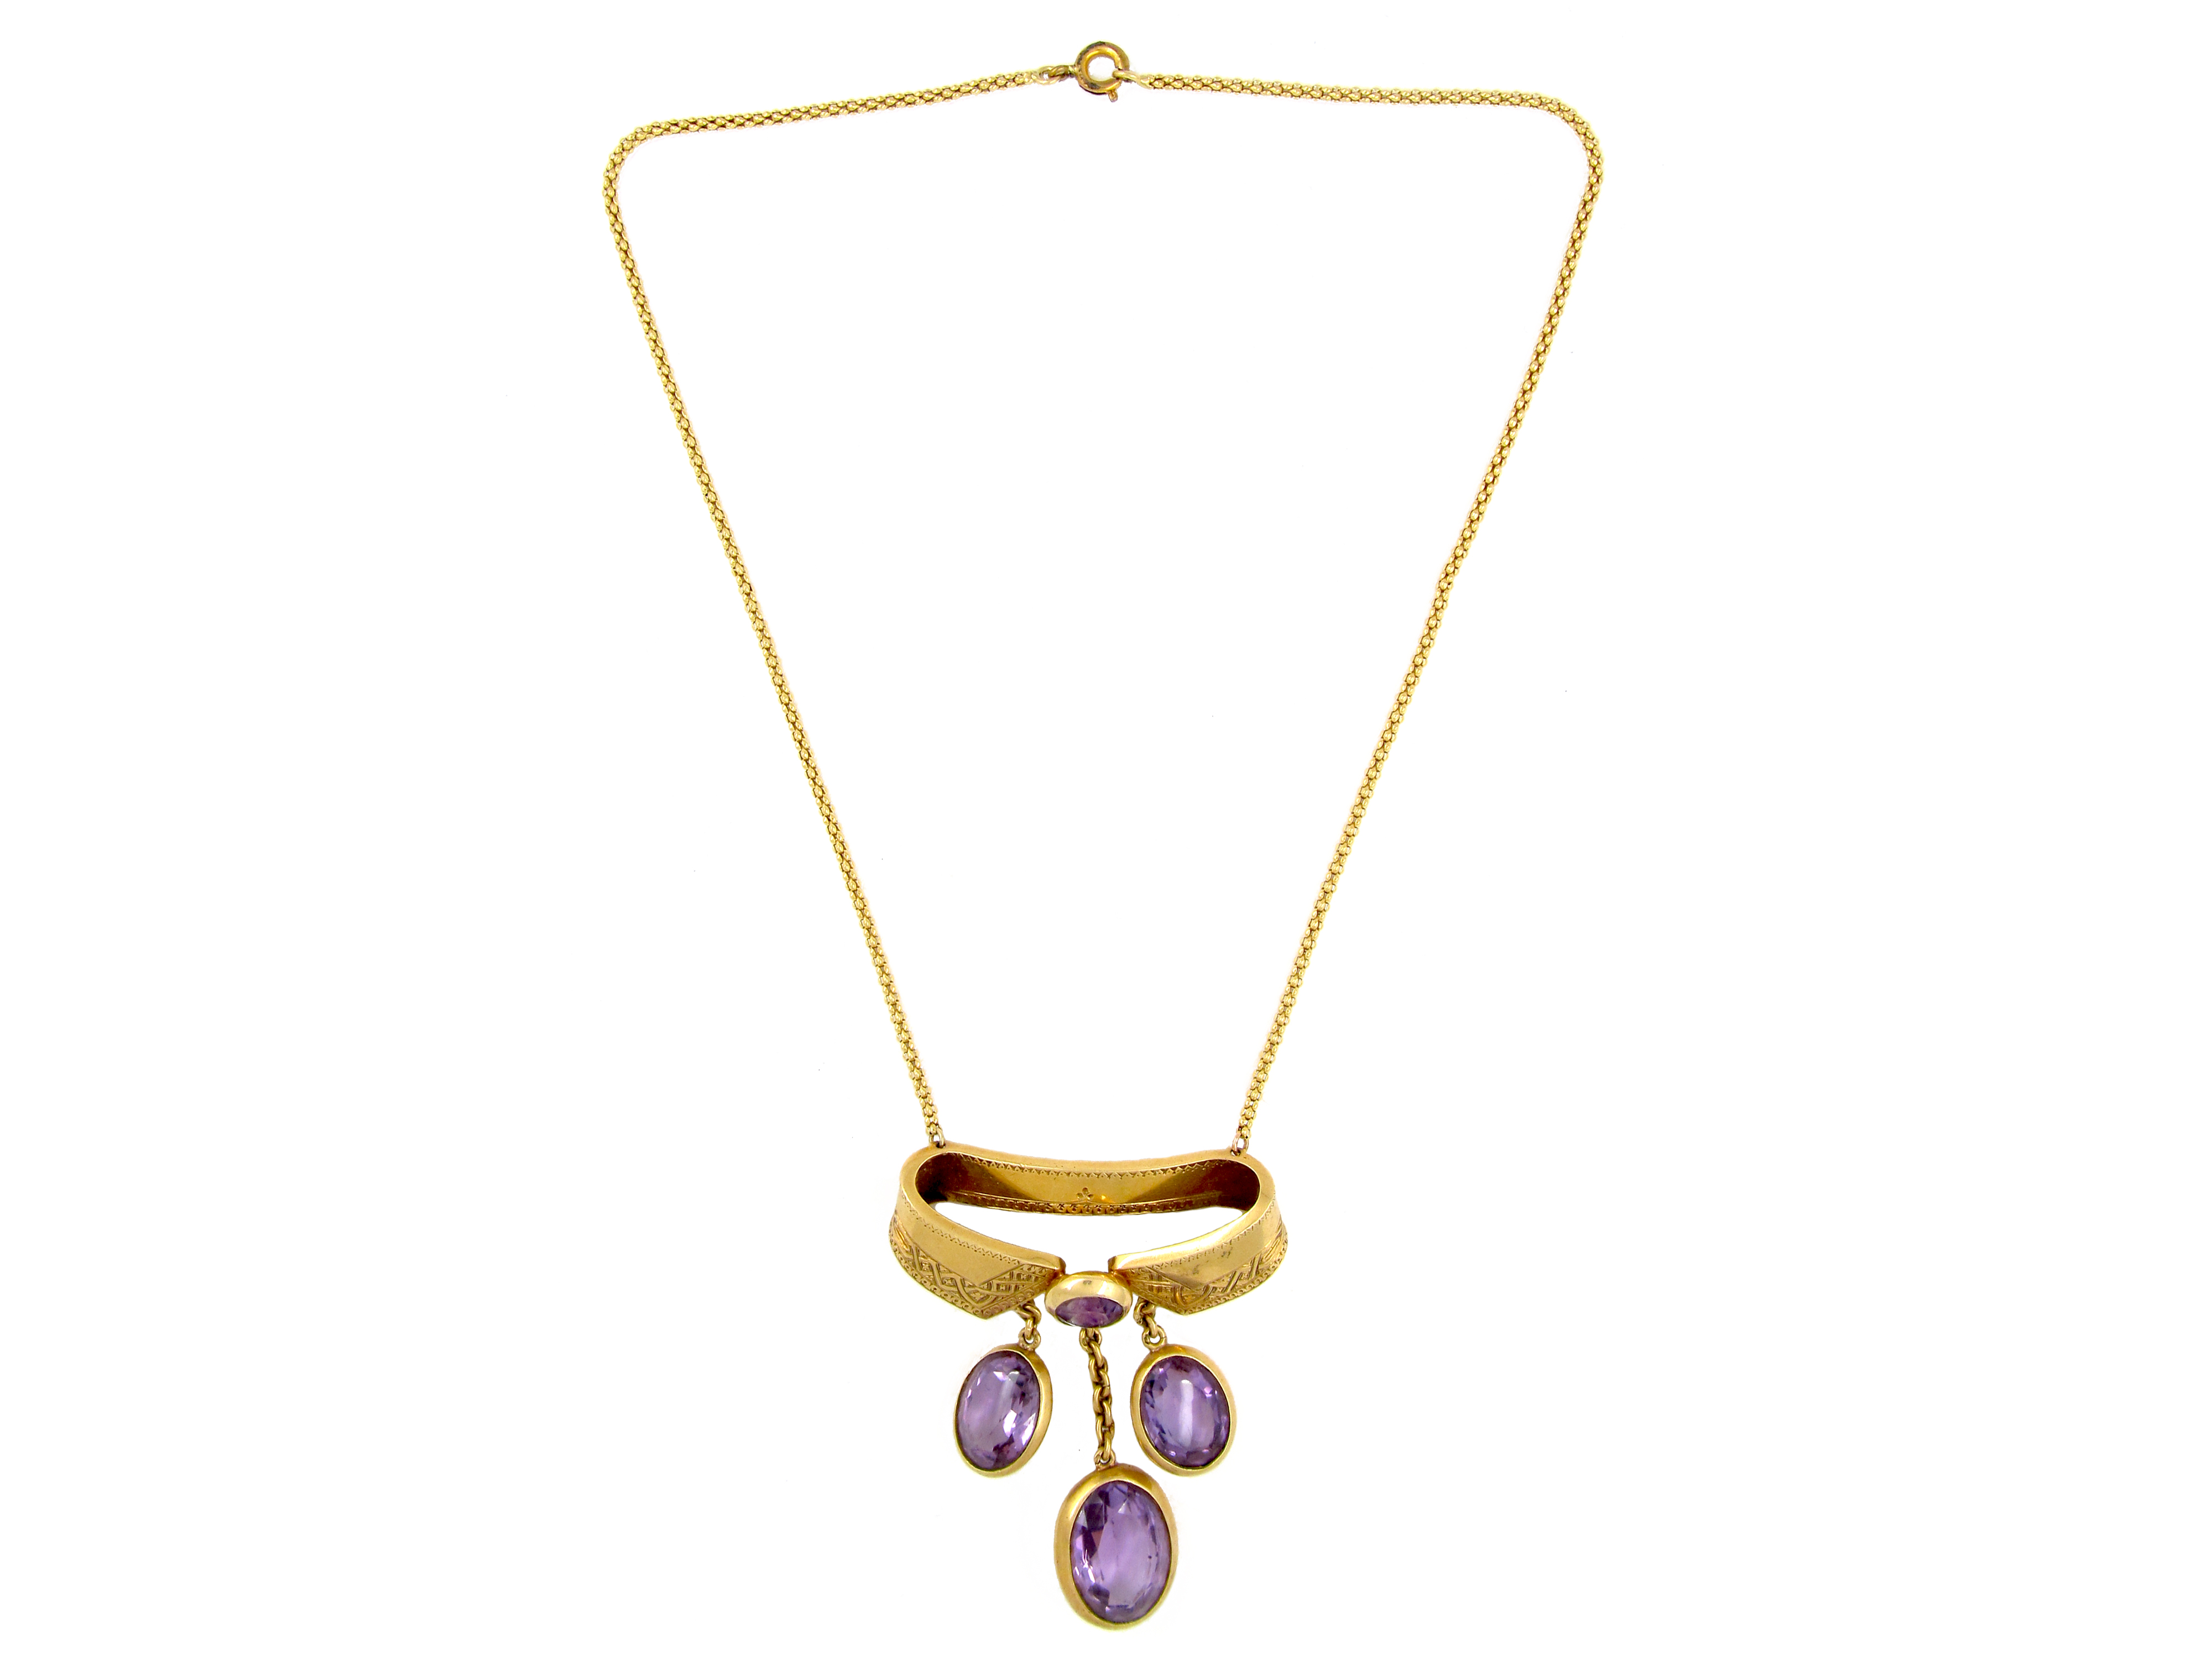 French 18ct Gold & Amethyst Necklace